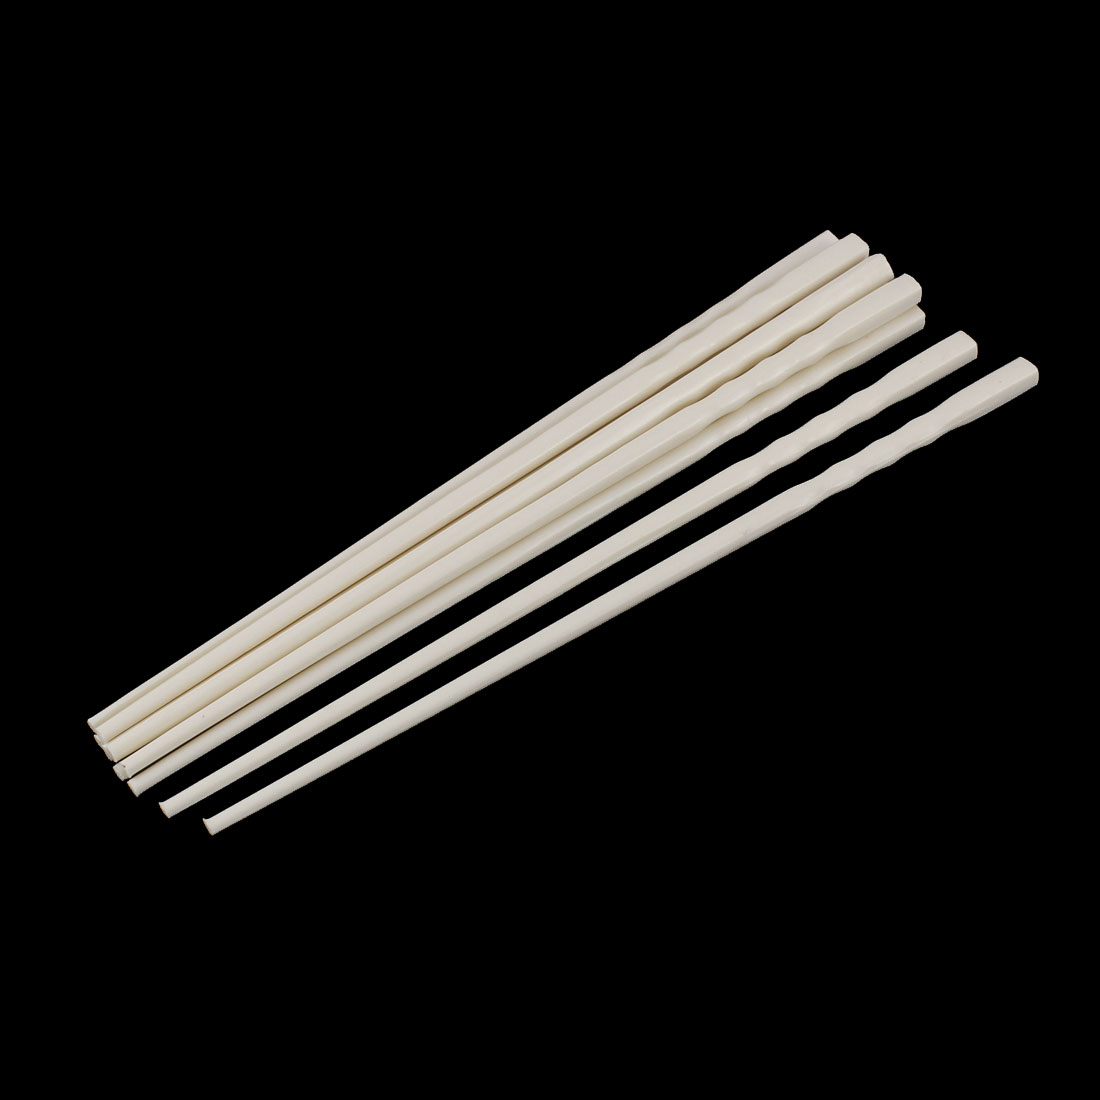 5 Pairs Chinese Traditional Home Kitchen Lunch Chopsticks Gift Beige